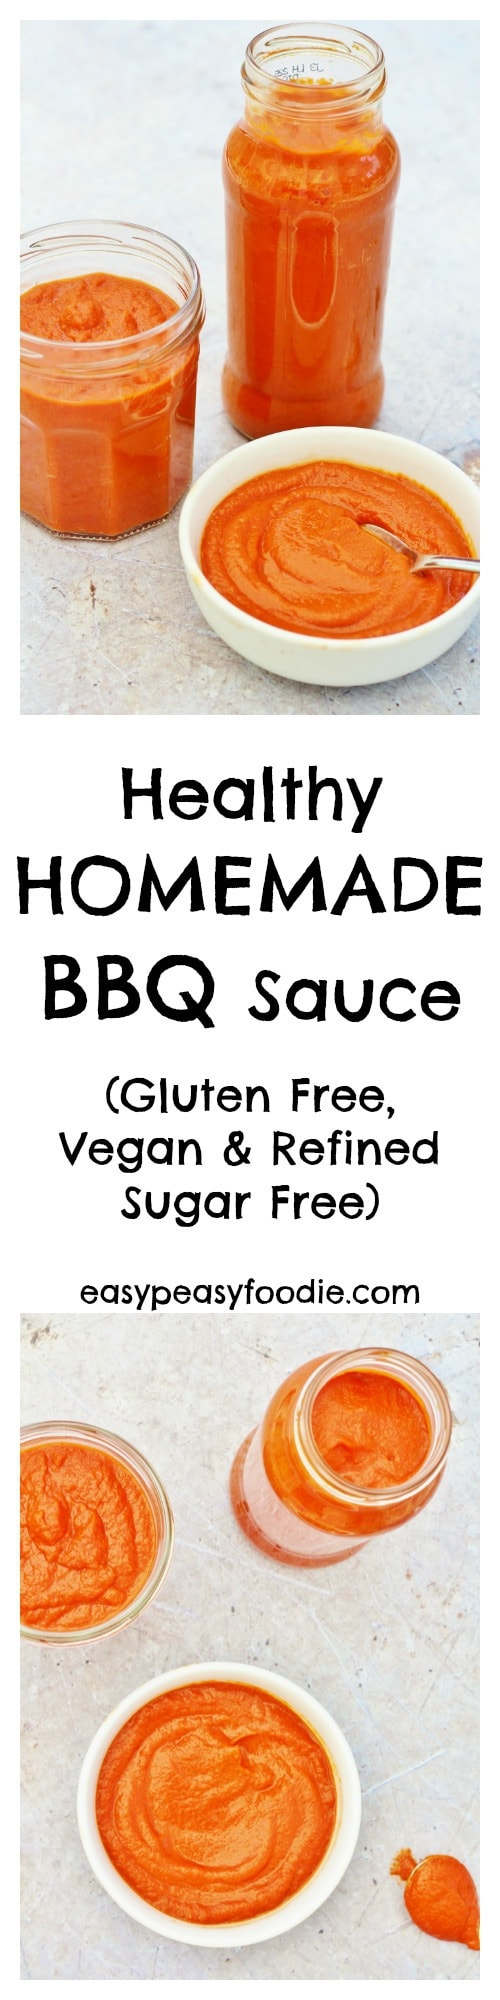 A delicious, healthy alternative to the additive laden commercial versions, this Healthy Homemade BBQ Sauce is super easy to whip up and way more tasty! #bbqsauce #homemade #bbq #healthy #healthybbqsauce #glutenfree #dairyfree #vegan #vegetarian #veganbbqsauce #norefinedsugar